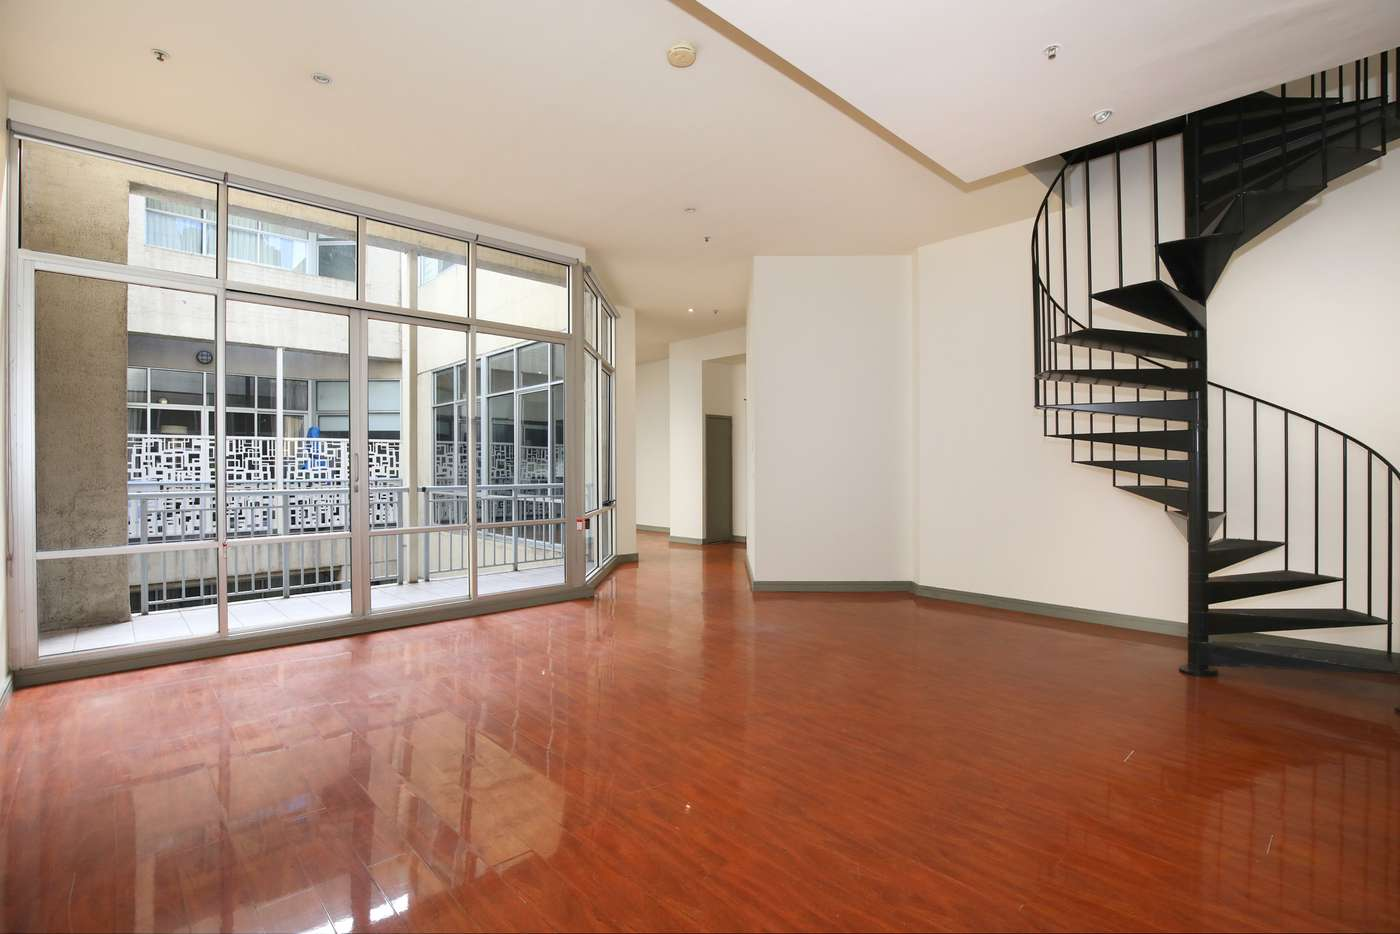 Main view of Homely apartment listing, 44/398 La Trobe Street, Melbourne VIC 3000